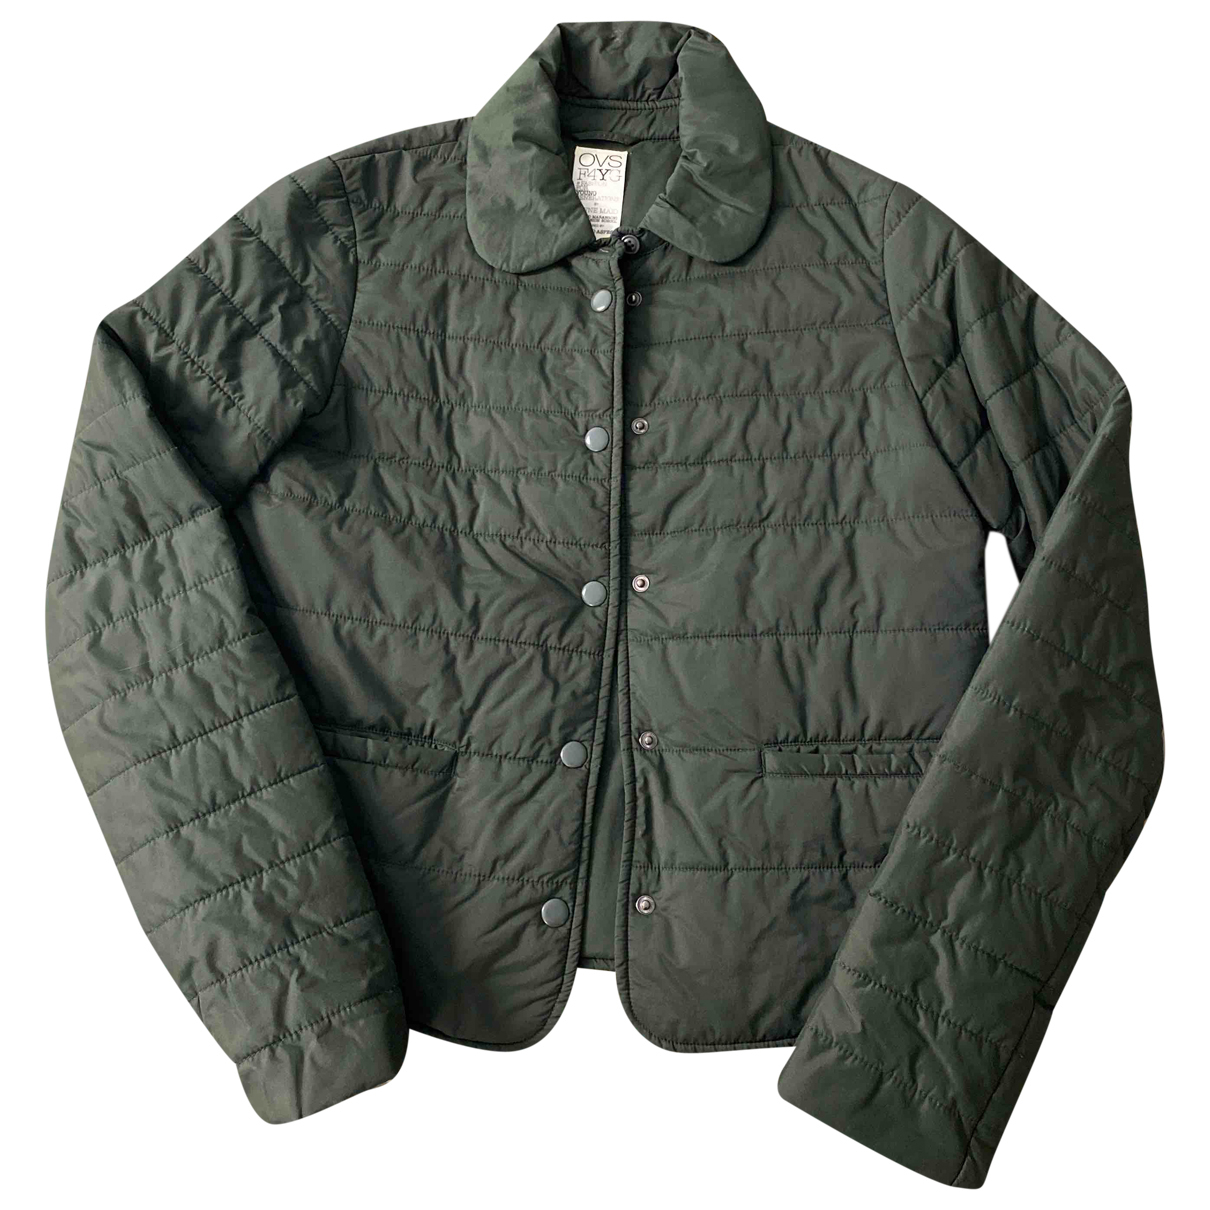 Aspesi \N Green jacket for Women XS International